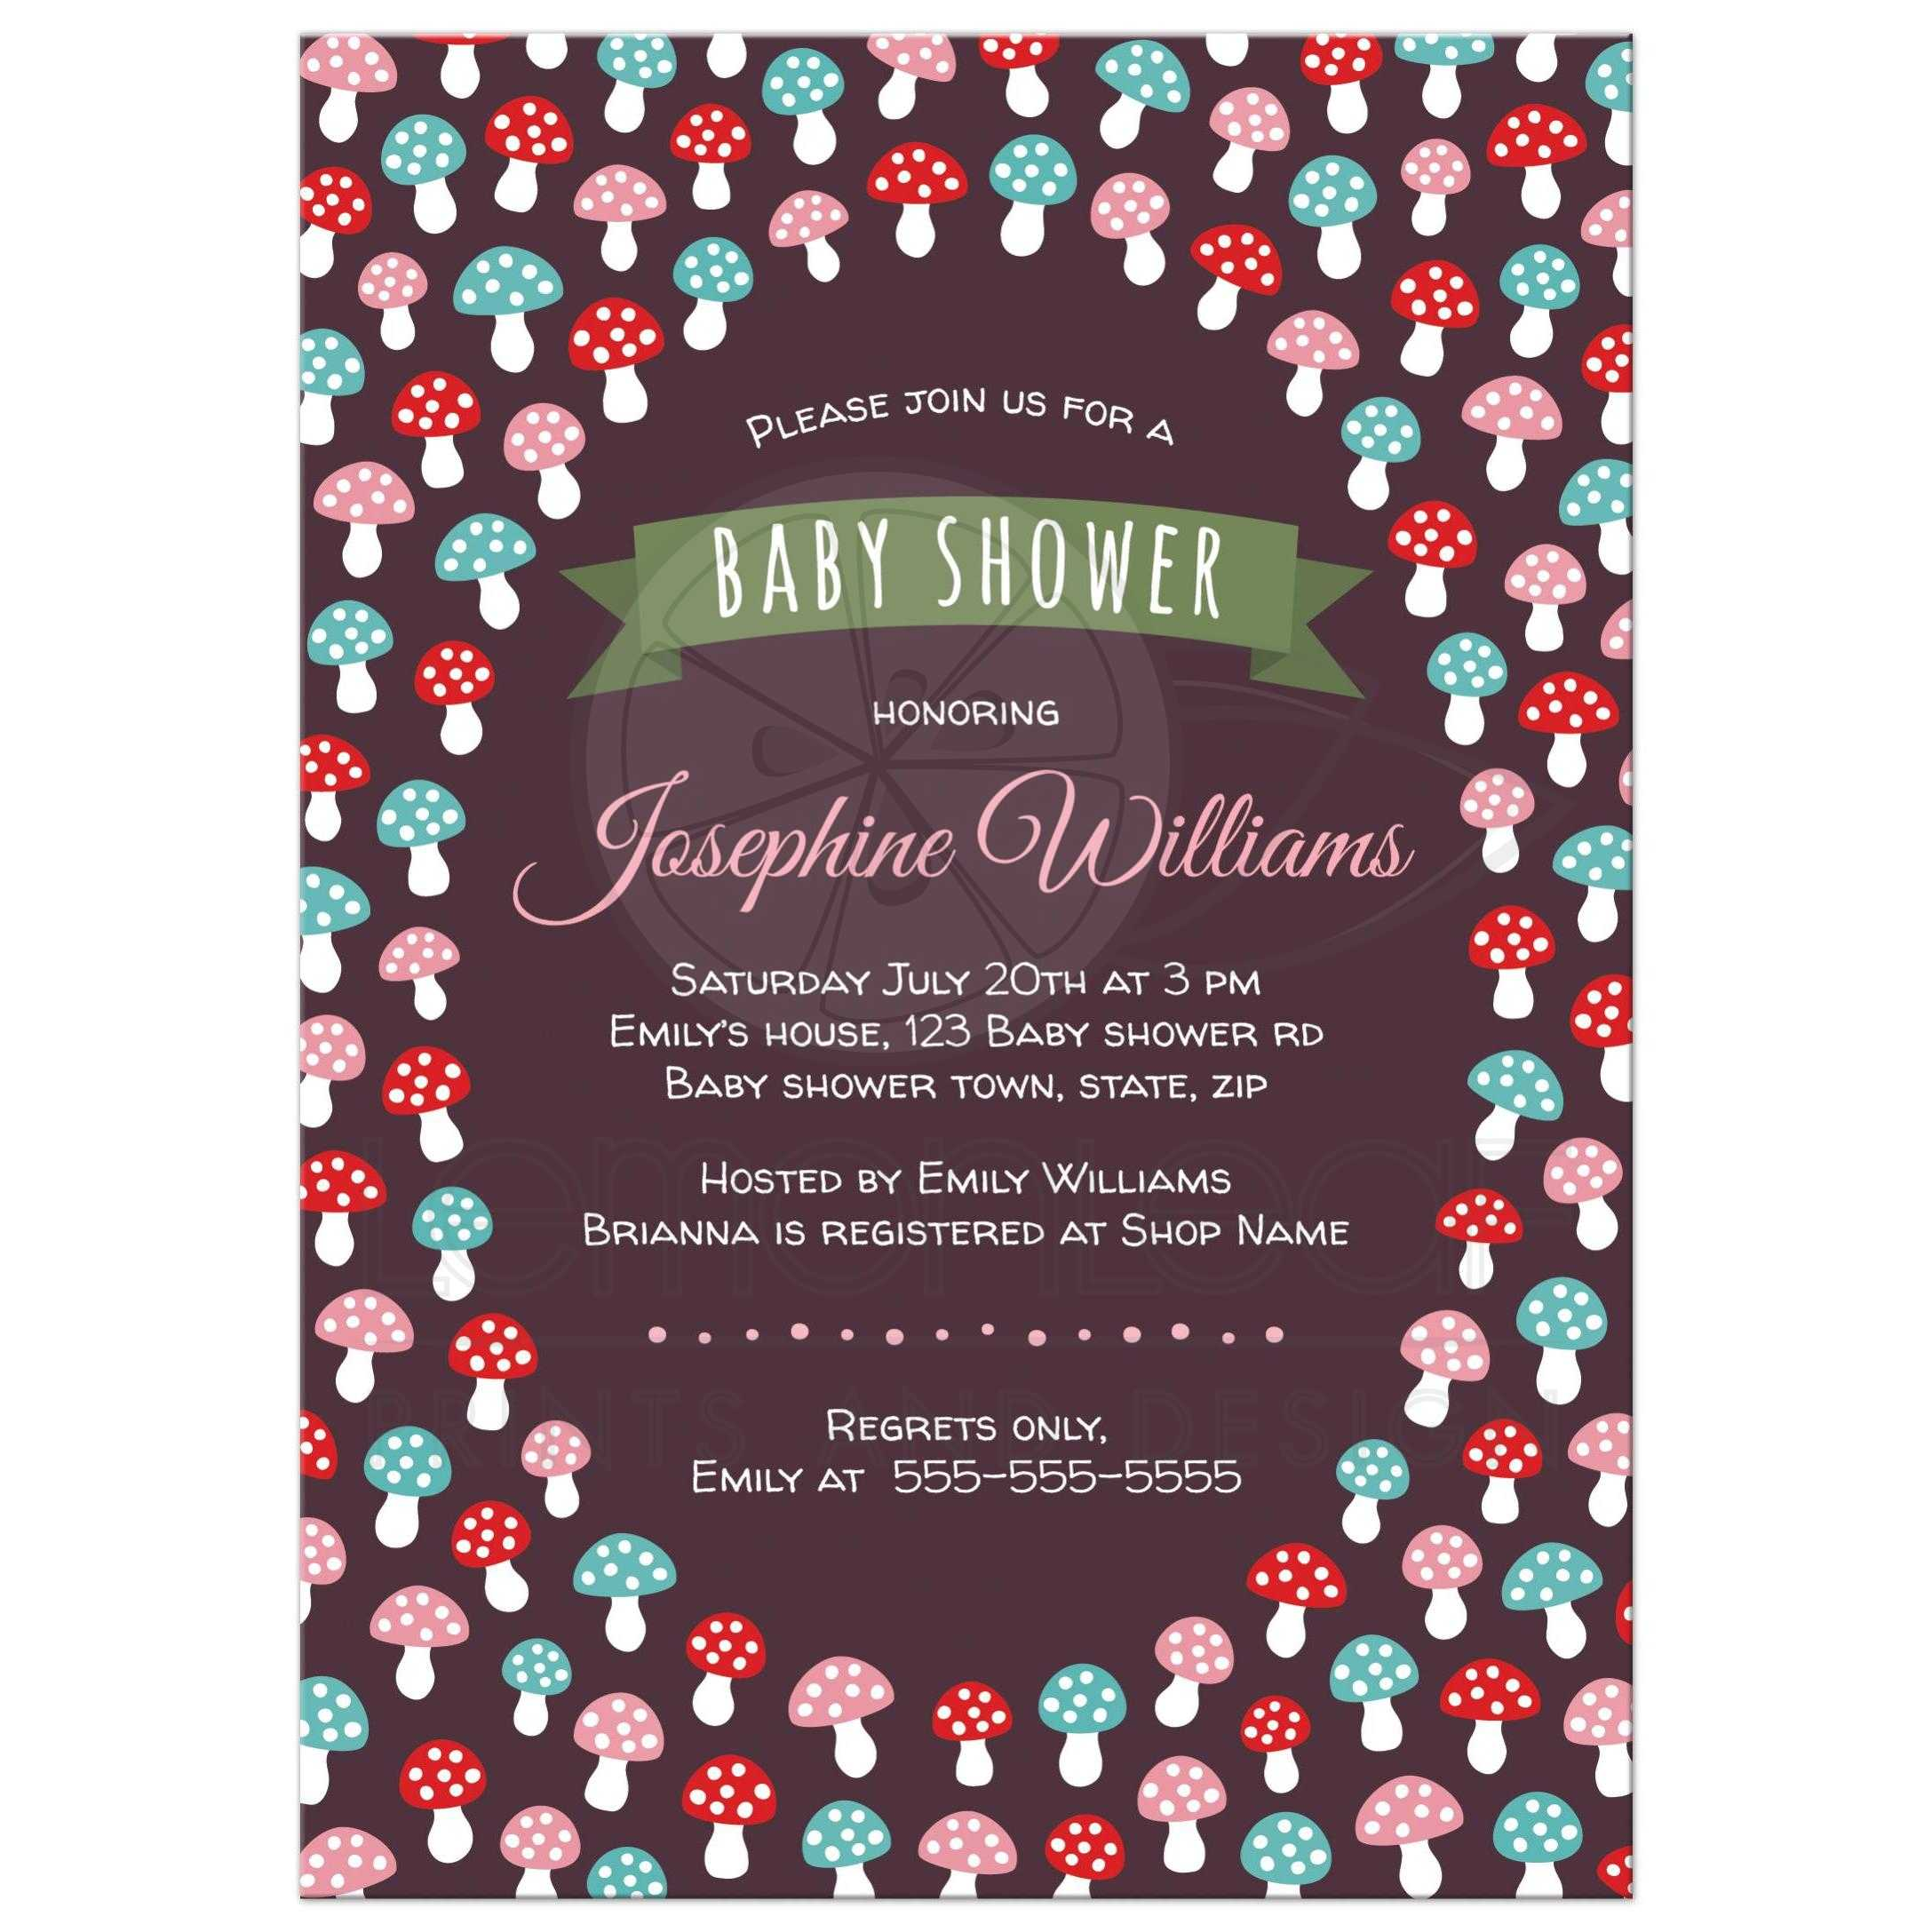 Cute baby shower invitation with red, pink and blue mushrooms ...